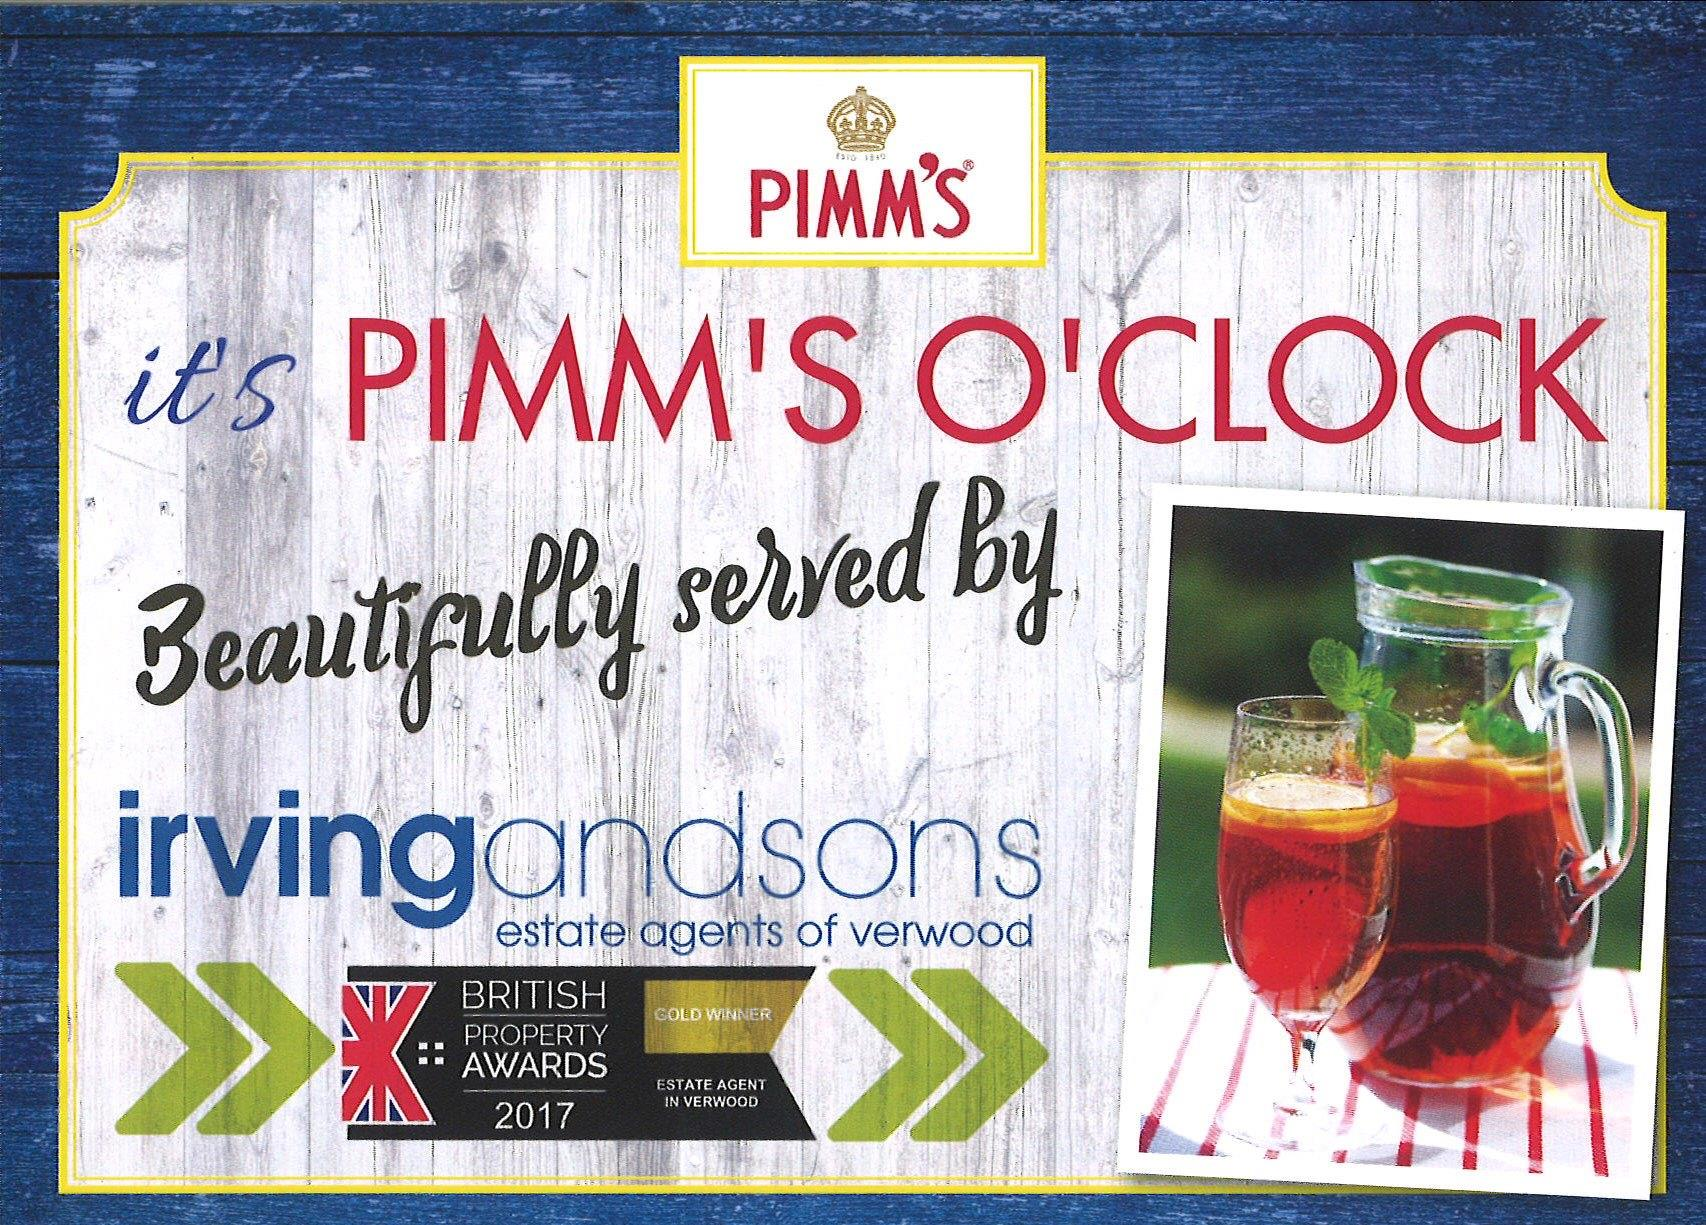 It's Pimm's O'Clock at the Rustic Fayre!